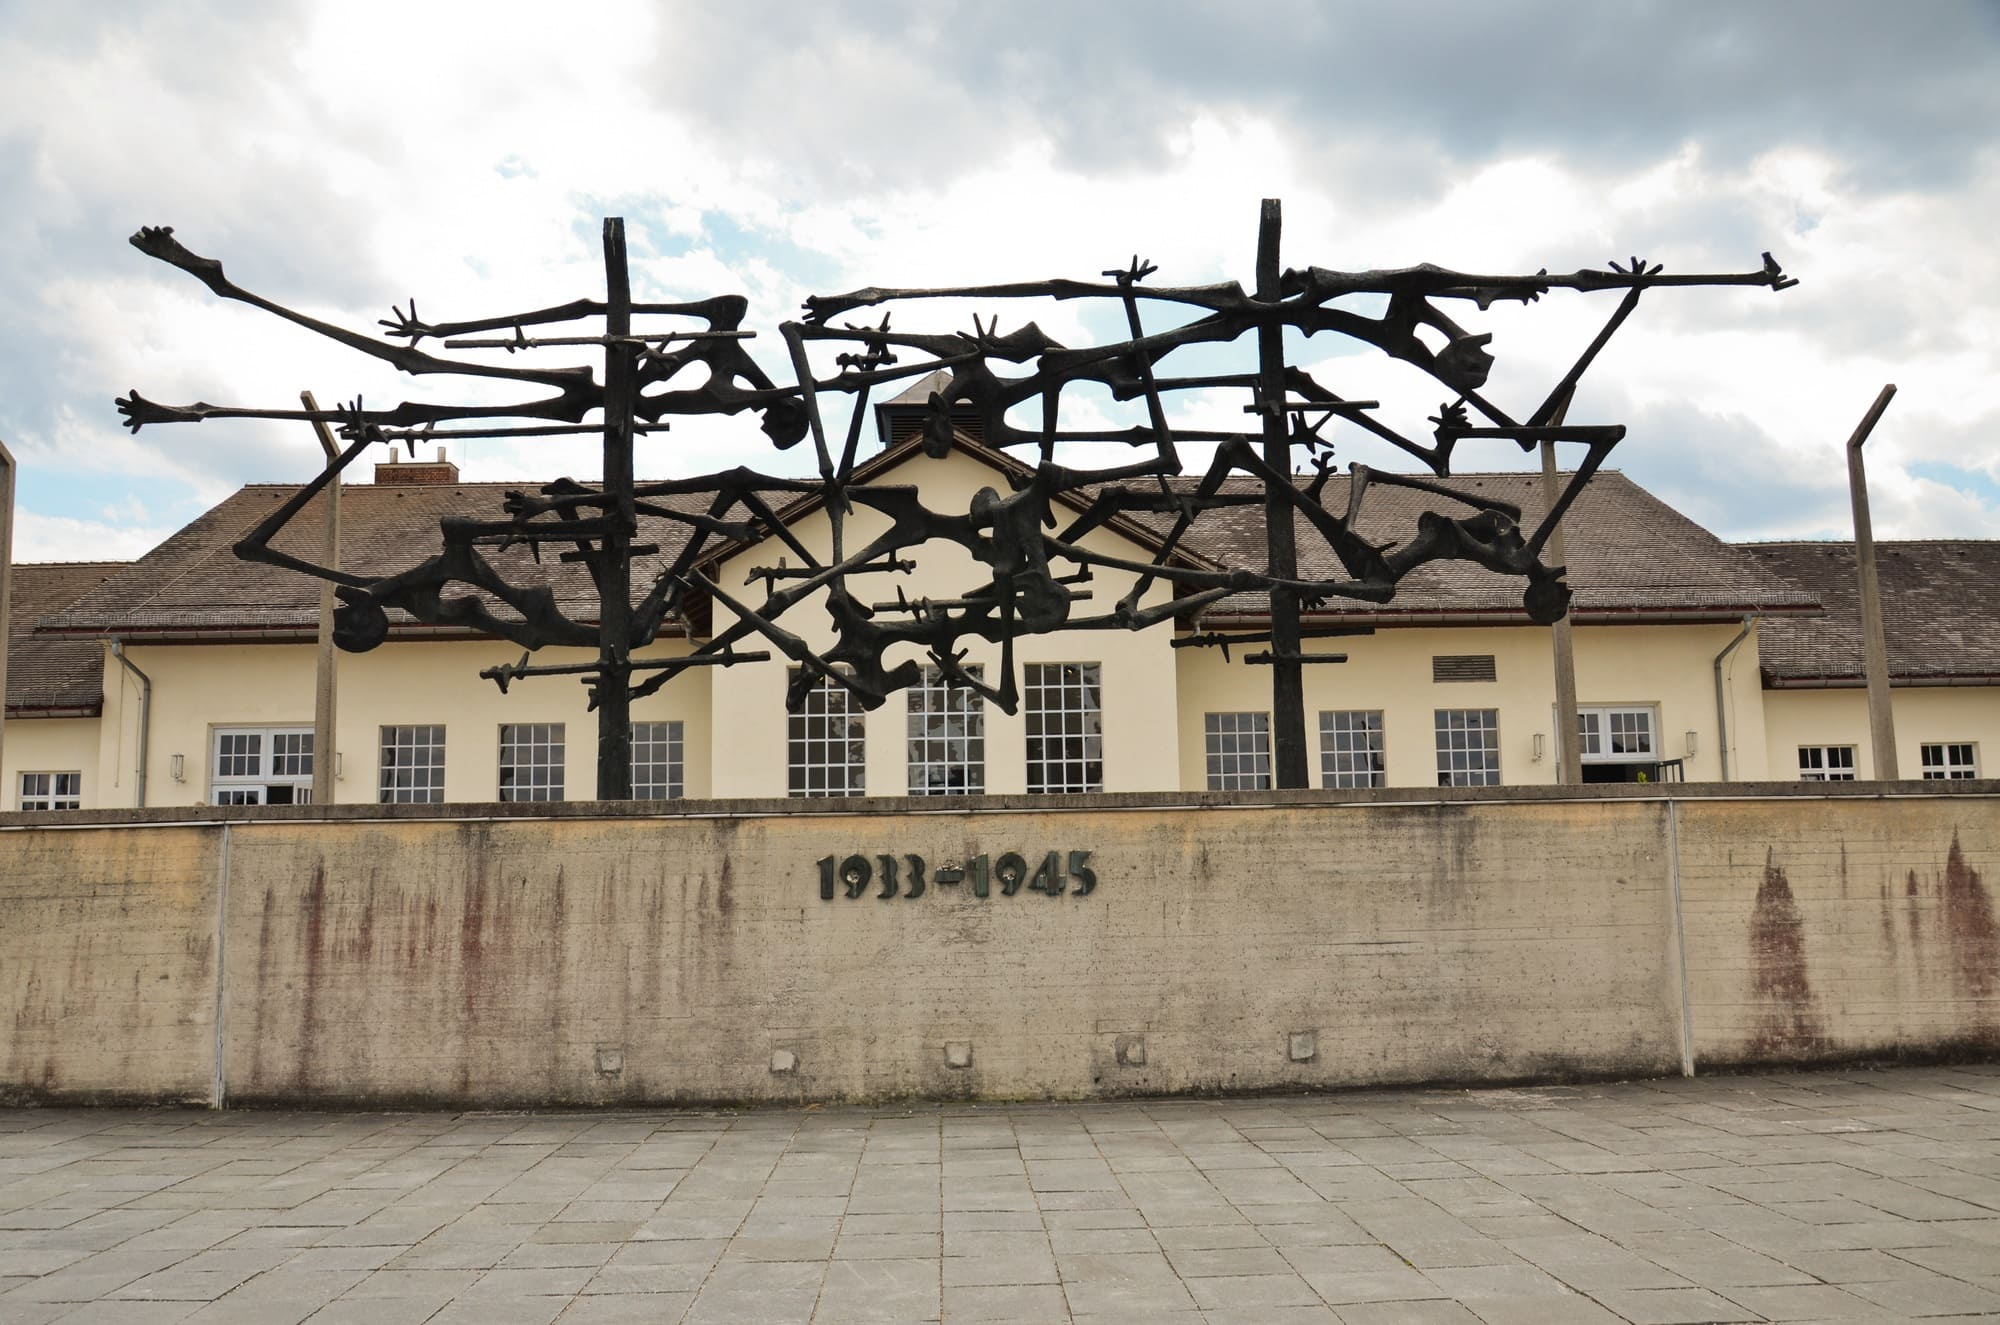 A memorial to the victims at the Dachau concentration camp